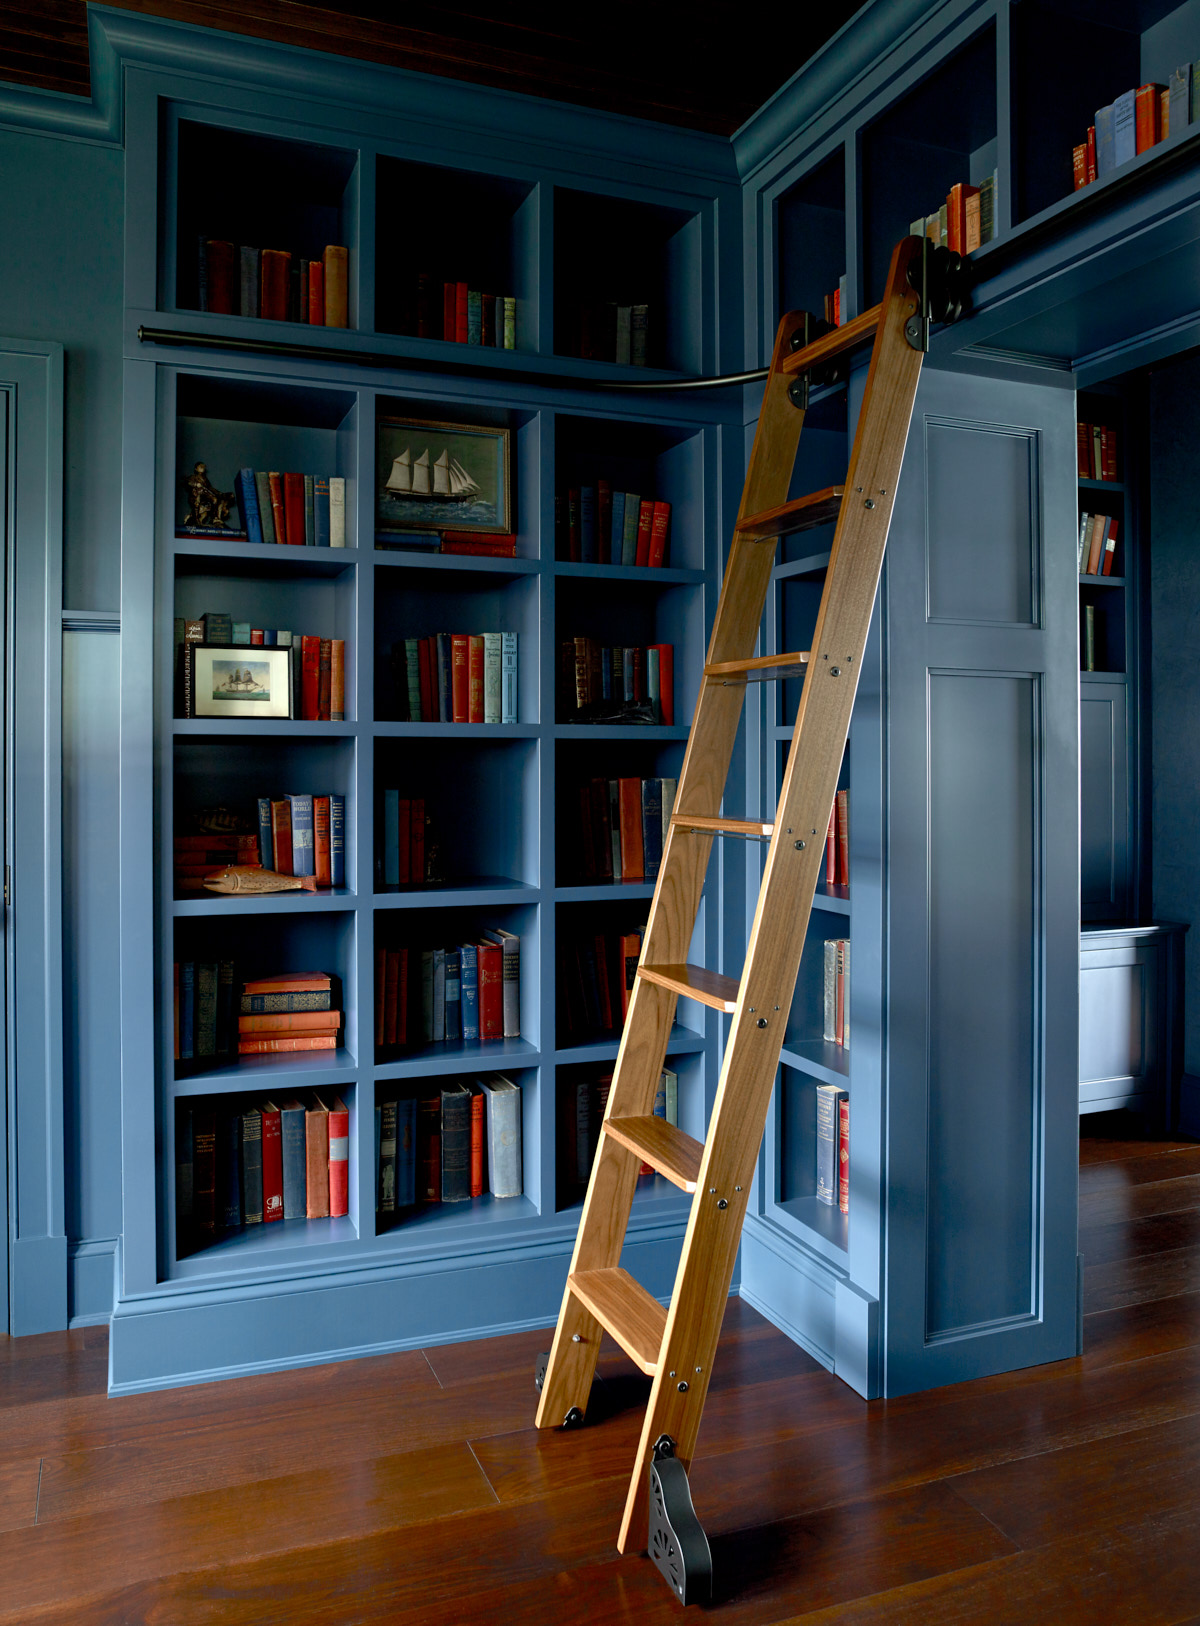 A view of the library at Salacia, complete with a ladder to reach the top shelf.